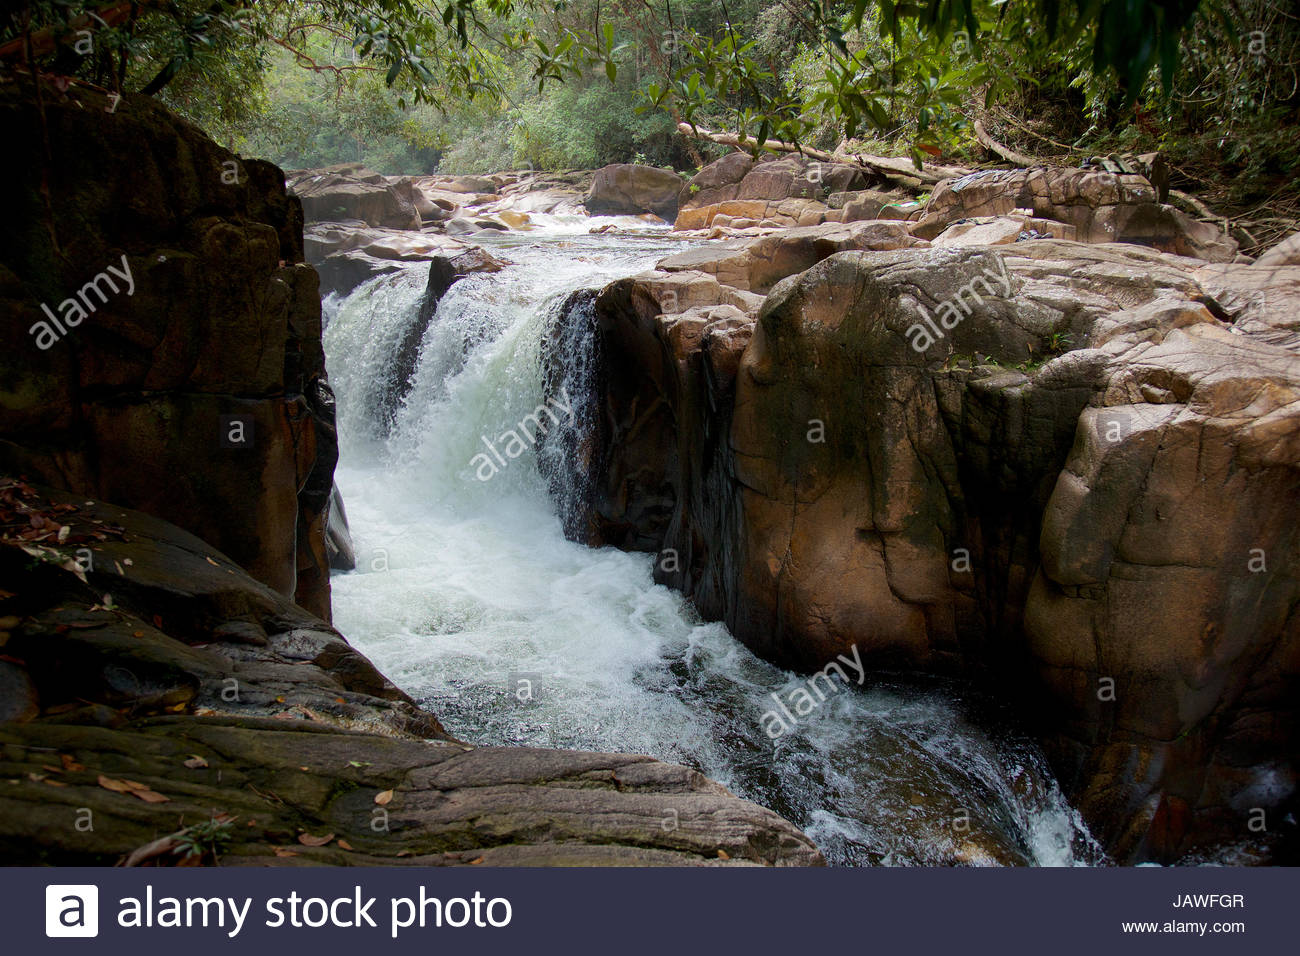 Riam Parit, or the Channel Falls, an unusual slot waterfall on the upper Siduk River. - Stock Image